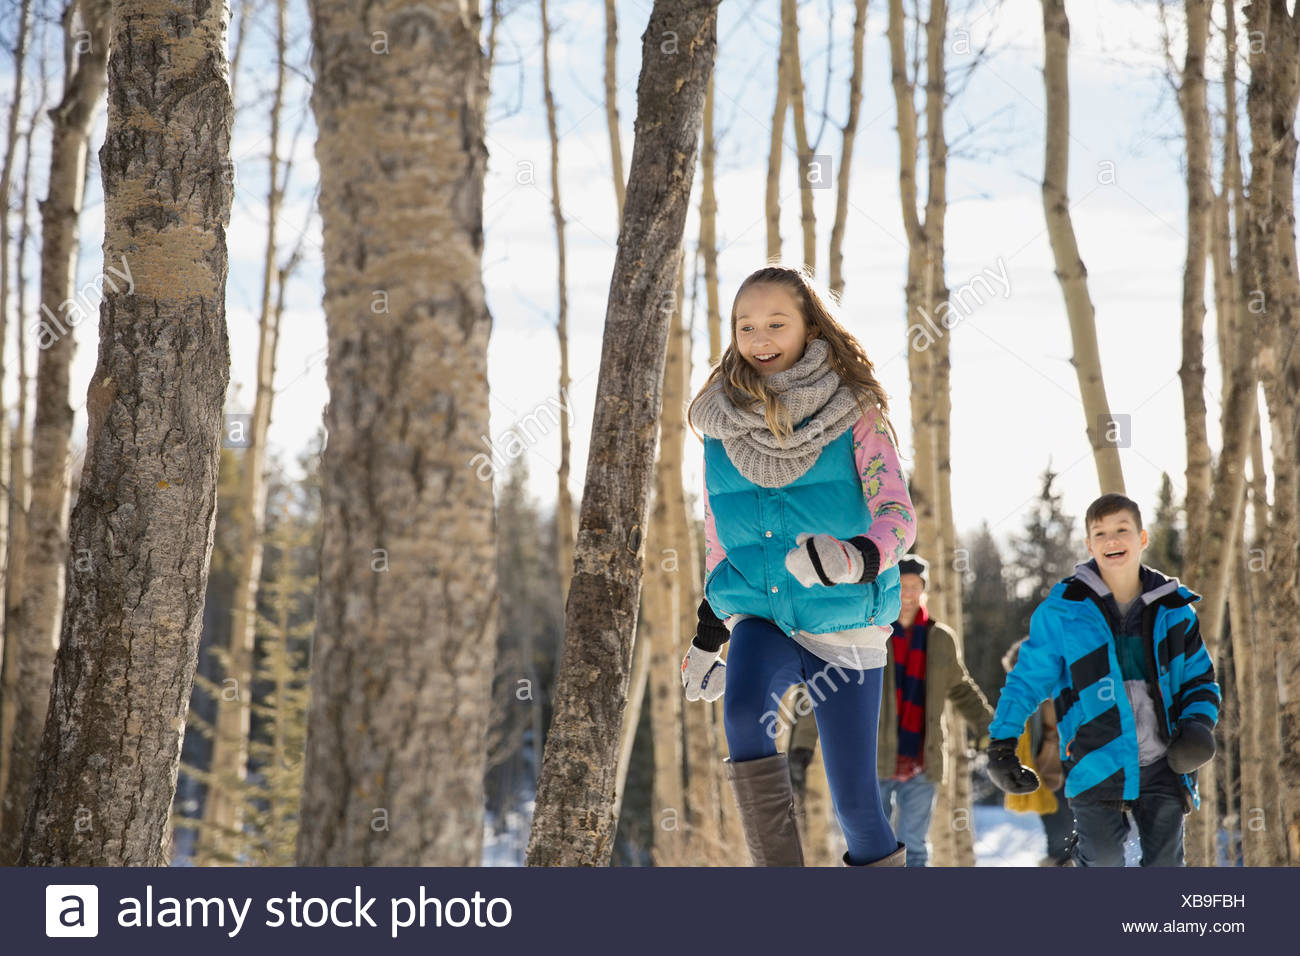 Siblings running through winter forest - Stock Image